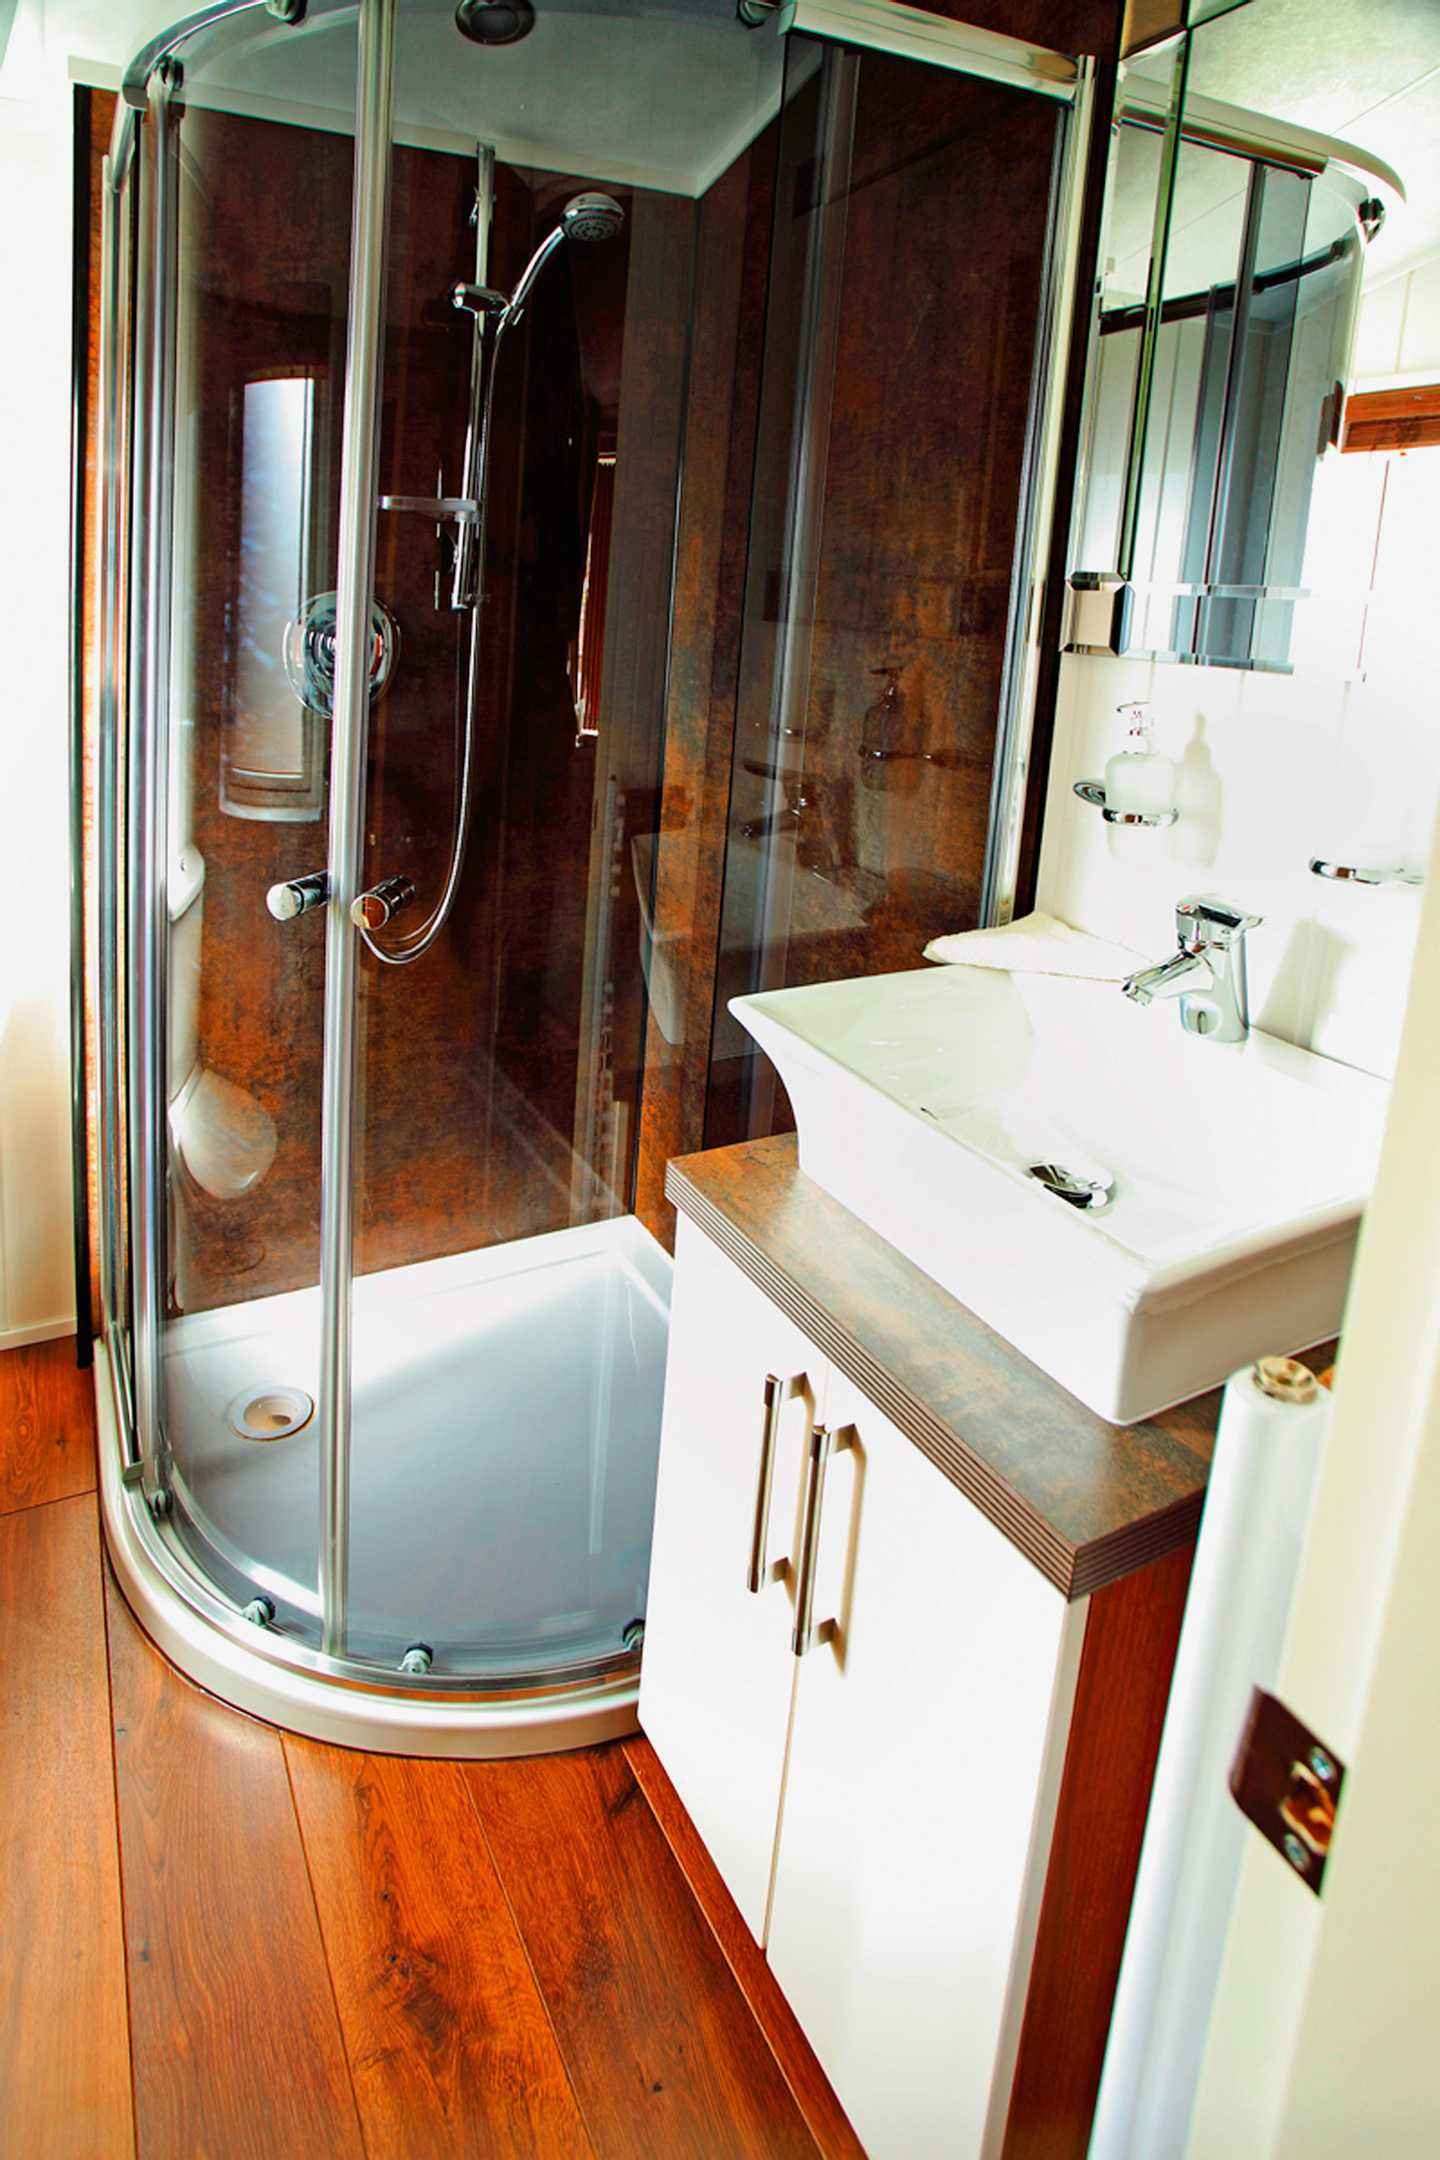 A Luxury Lodge bathroom with walk-in shower, sink and storage cupboard